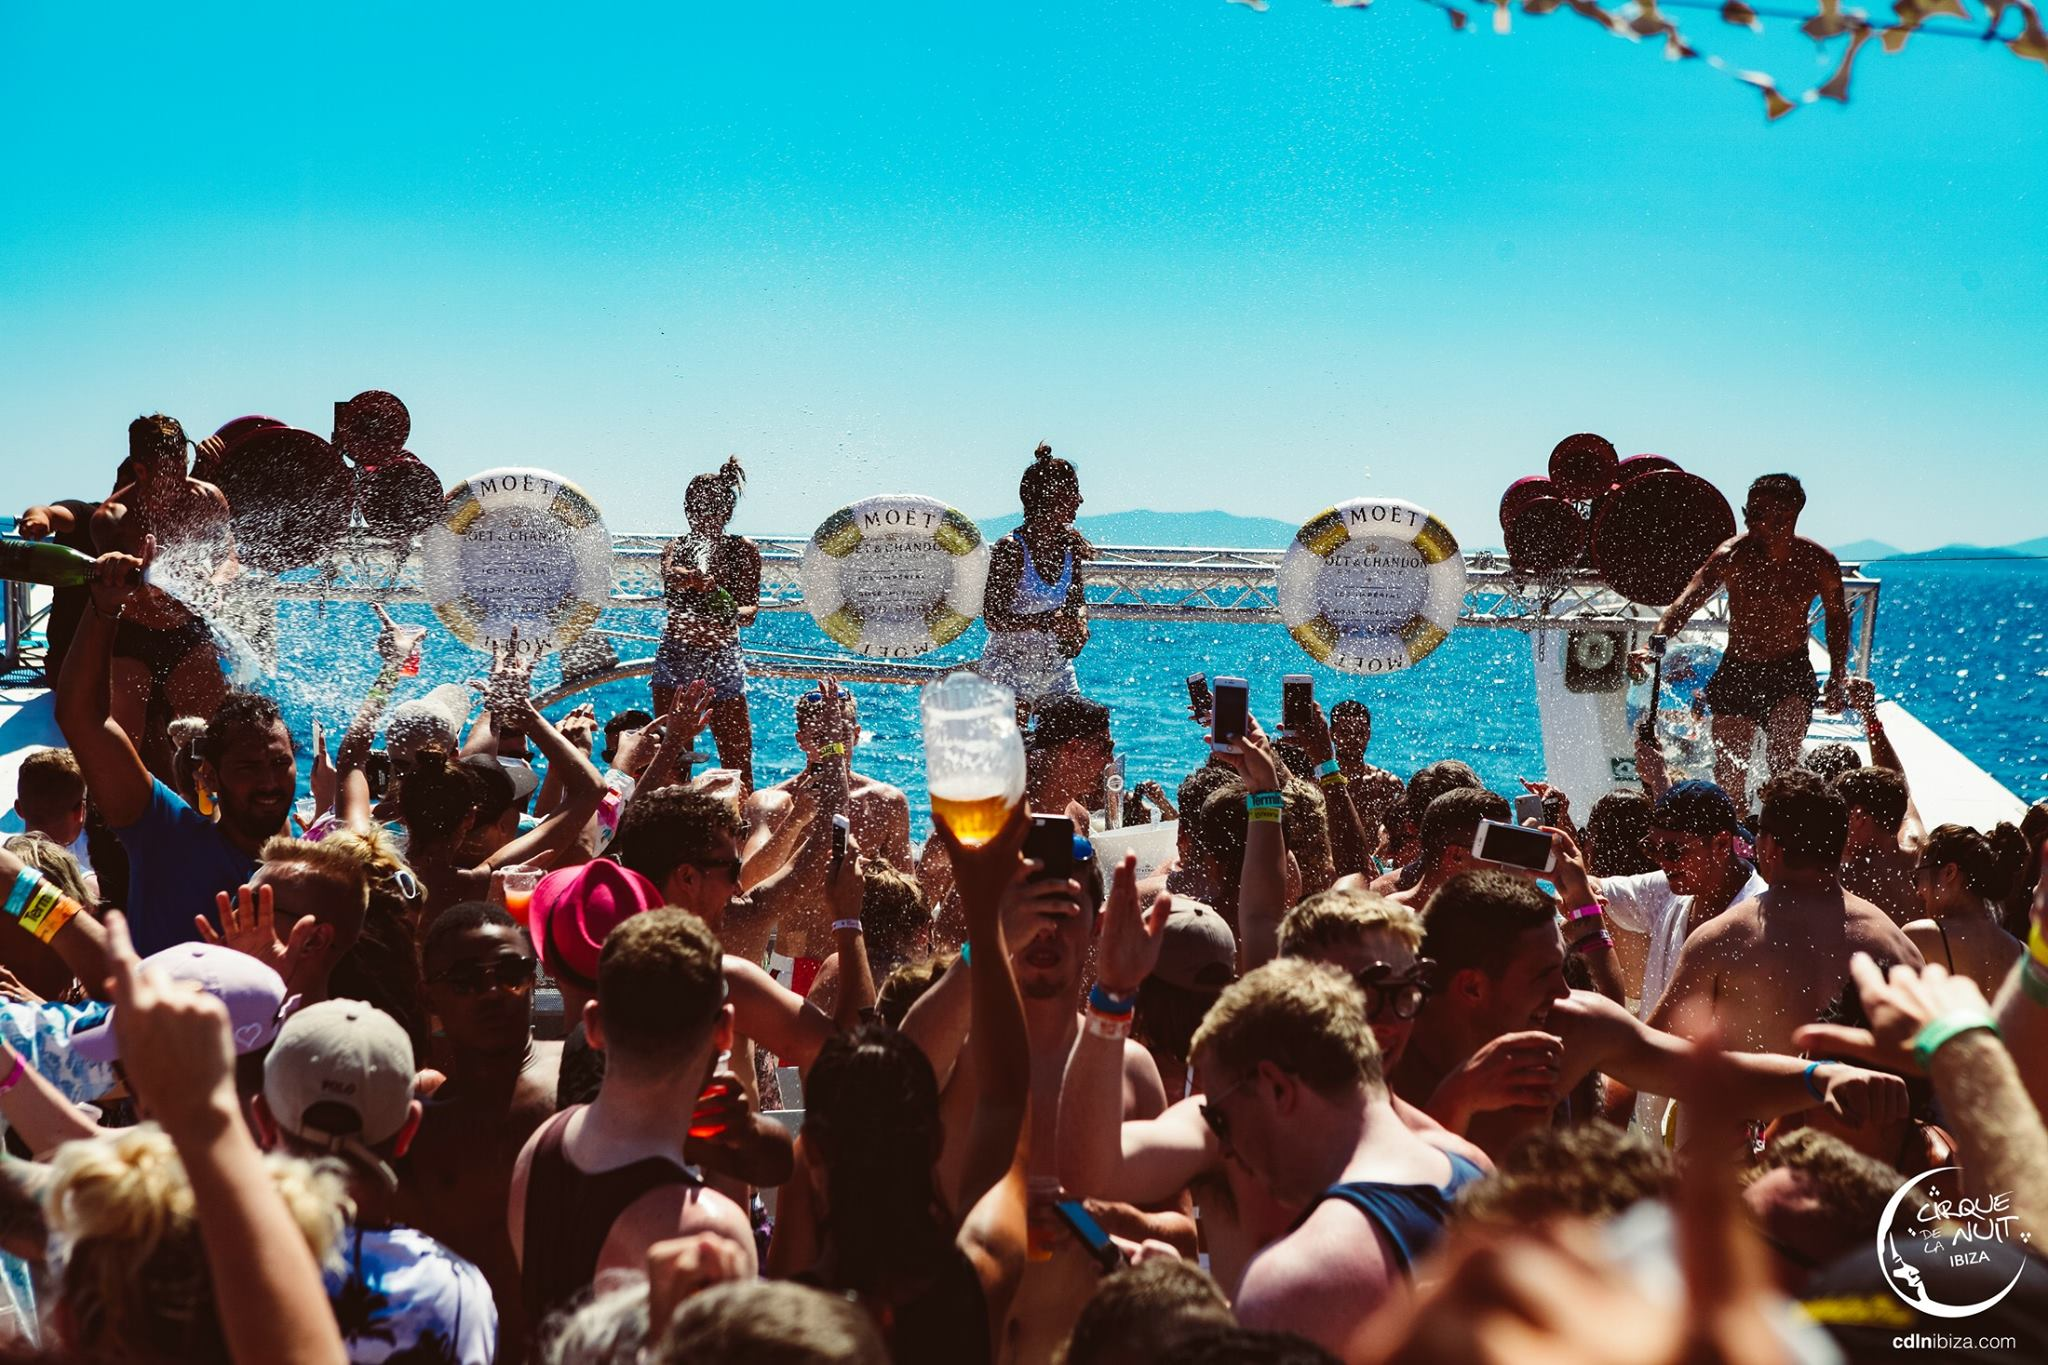 These Photos From Cirque de la Nuit Will Ruin Your Day… If You're Not In Ibiza